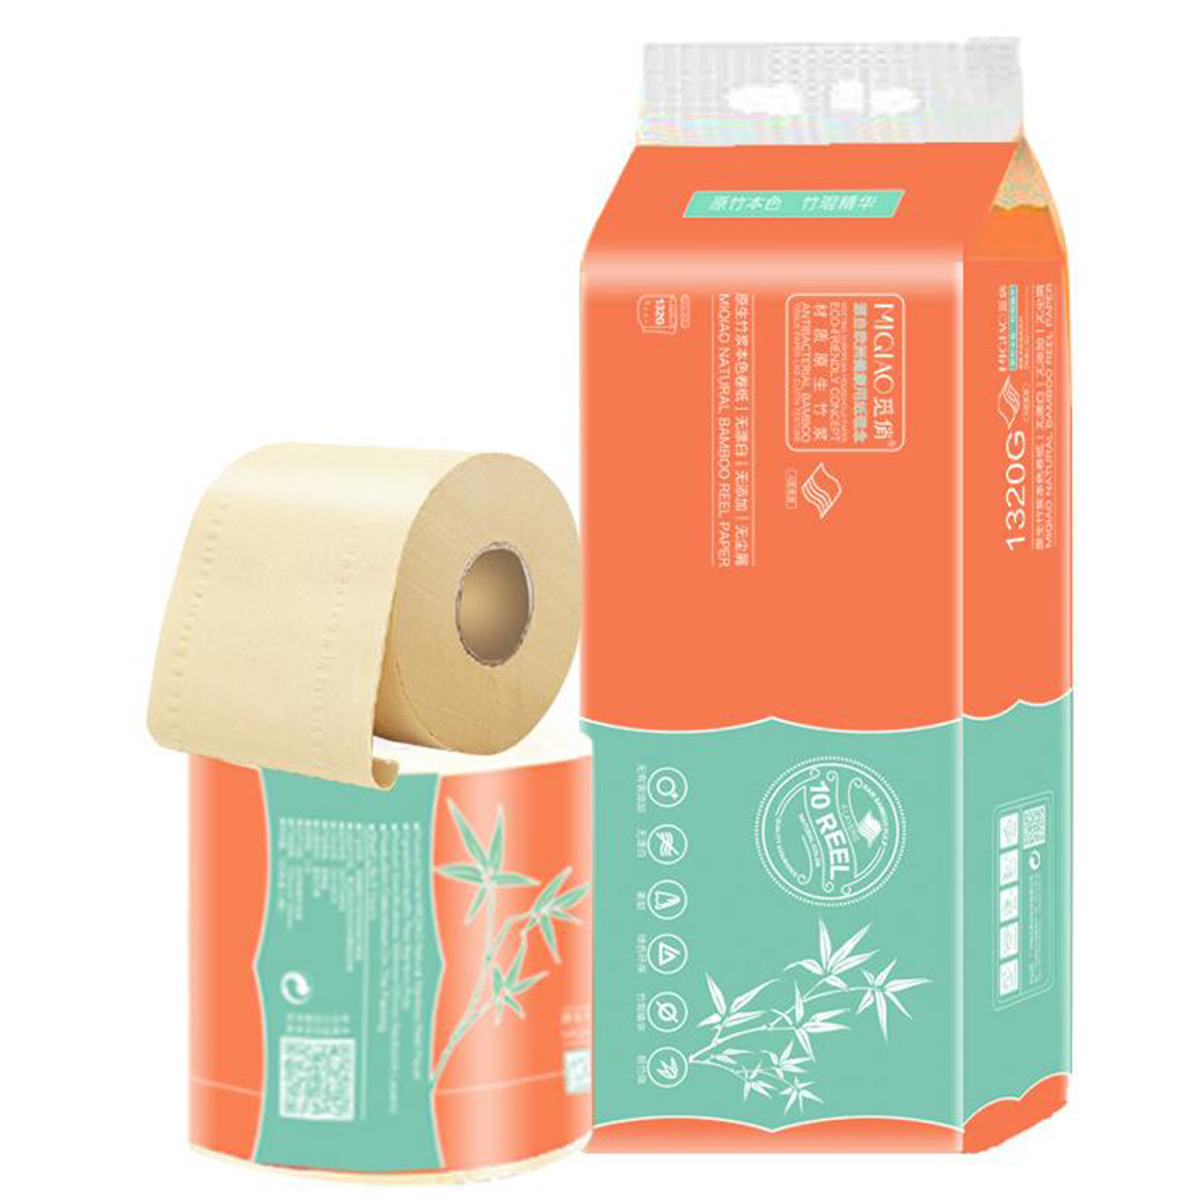 10 Rolls Of Toilet Paper For Home Kitchen Bathroom Office Use 4-layer Native Wood Pulp Soft Paper Tissue Rolling Paper